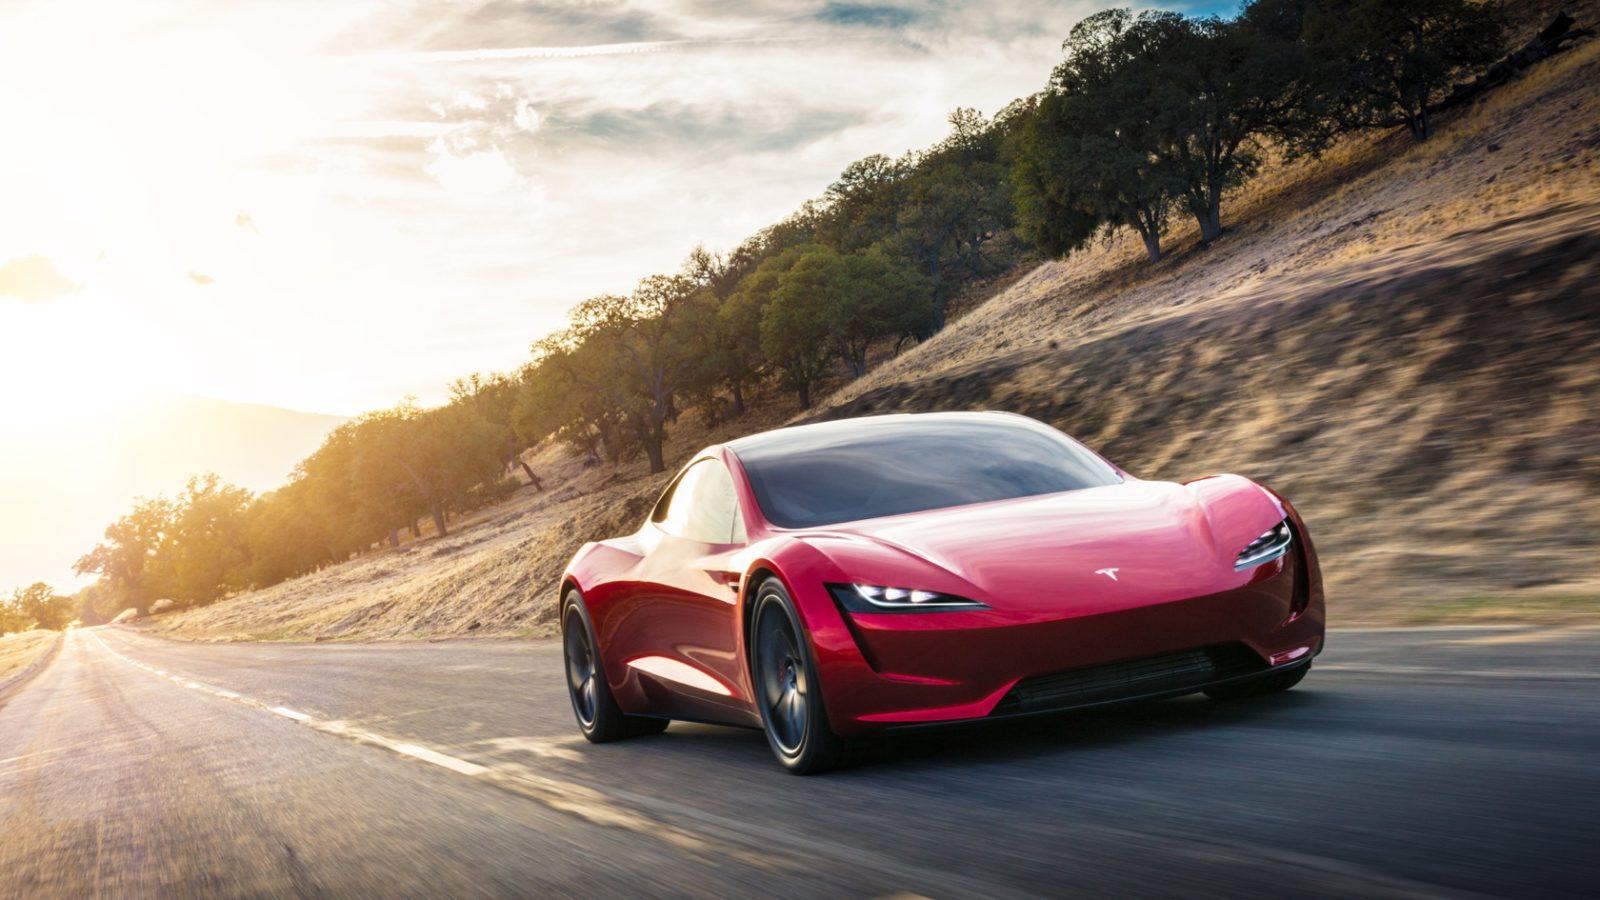 musk-claims-new-tesla-roadster-will-do-0-60-mph-in-1.1s-with-spacex-rocket-option